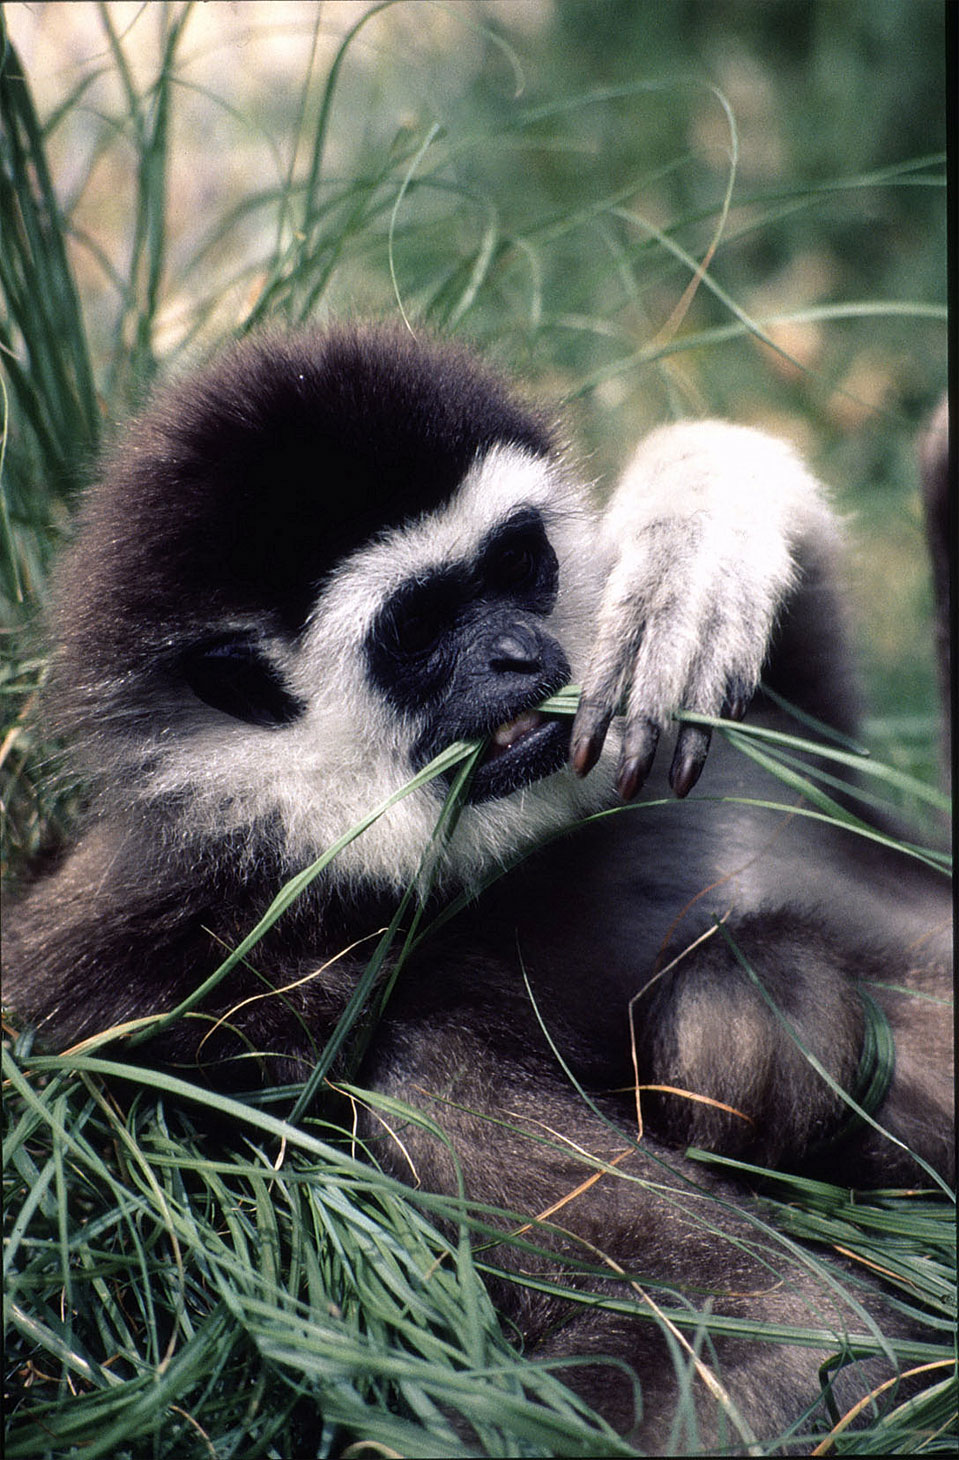 The lar or white-handed gibbon (Hylobates lar).